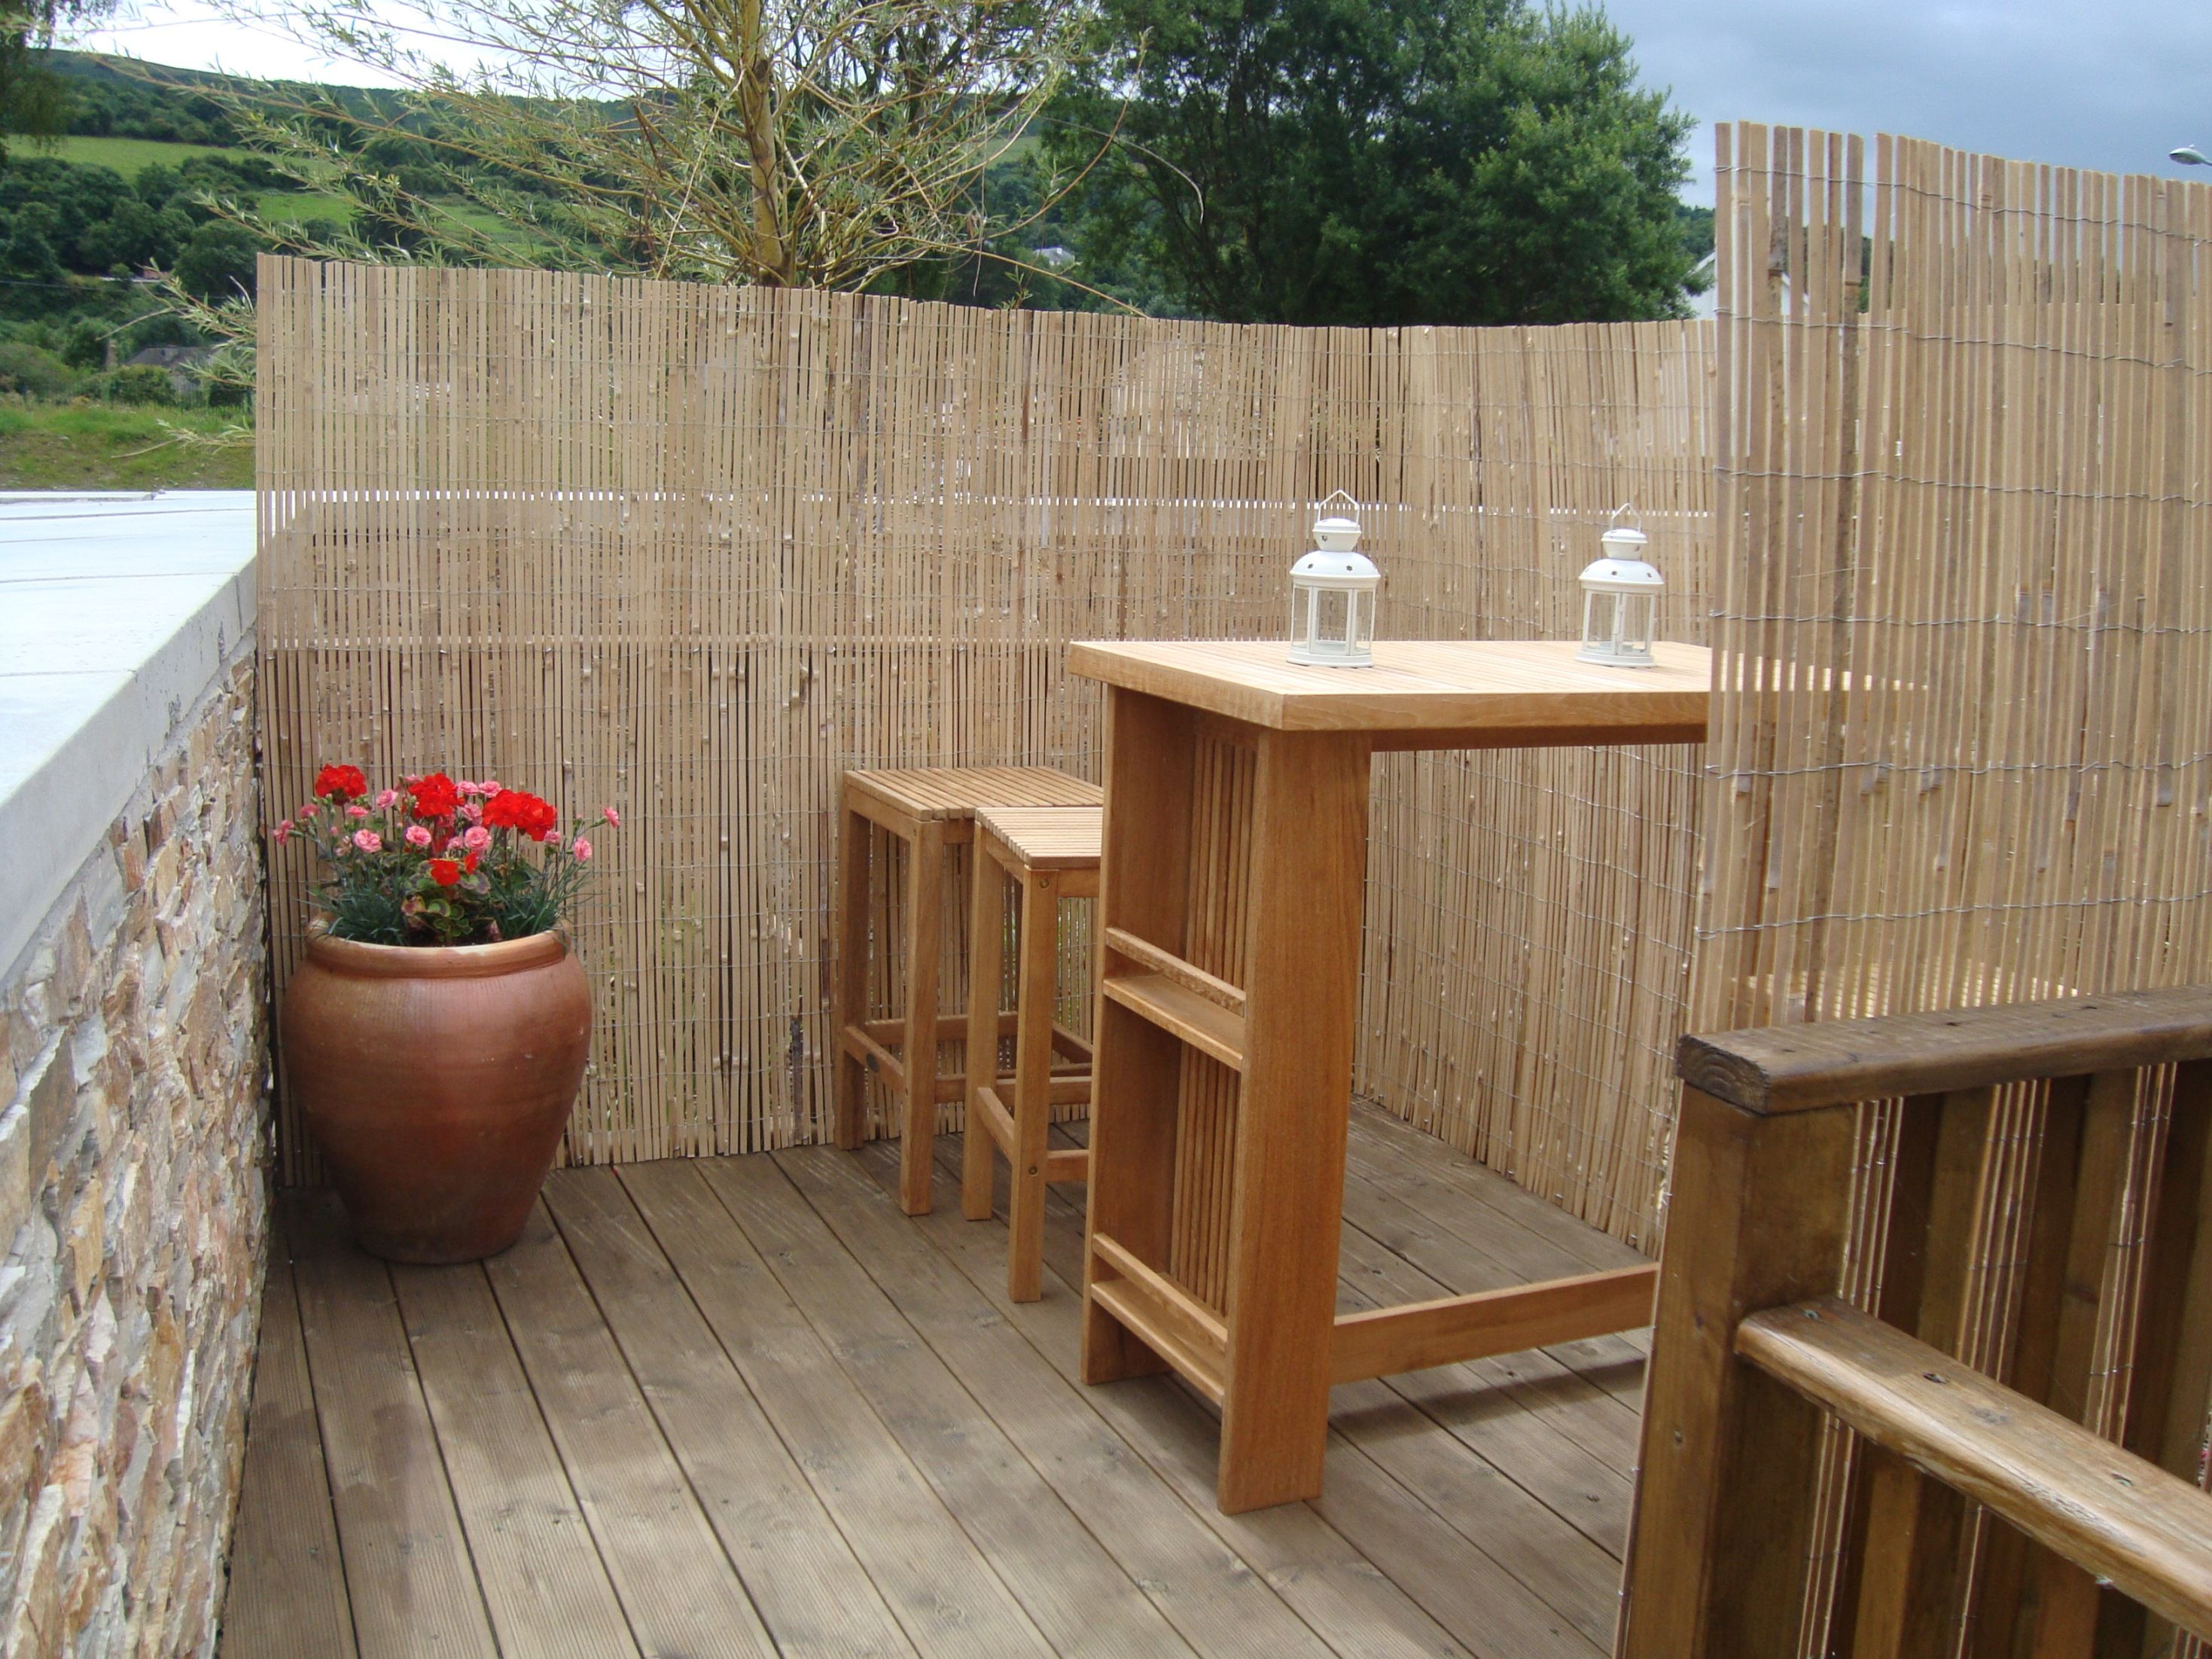 Outdoor, Beautify Your Backyard Deck With Split Bamboo Fencing For Garden  Deck Split Bamboo Fence As Outdoor Privacy Screen Fot Open Air Patio And  Outdoor ...